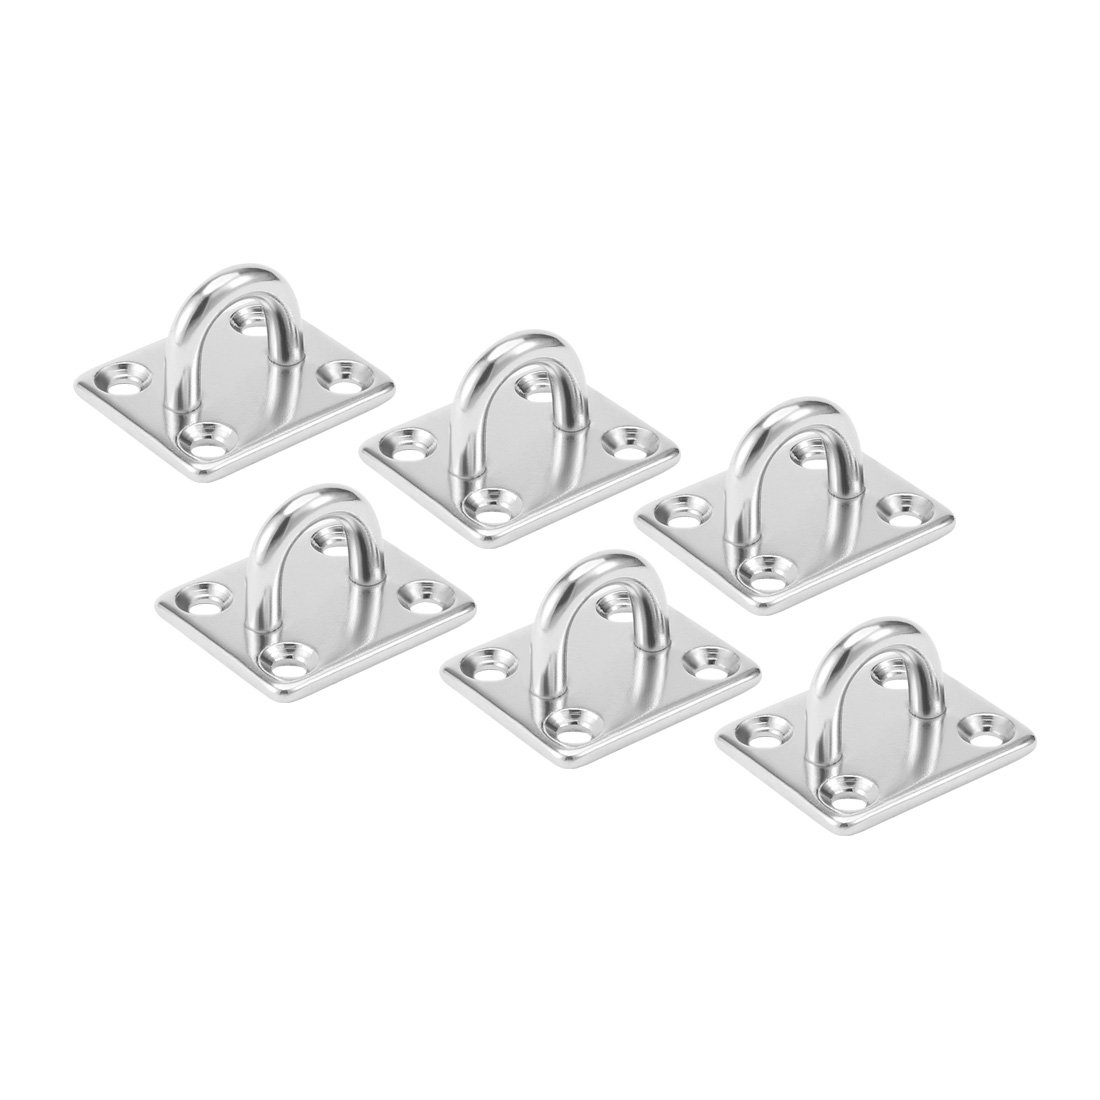 uxcell 316 Stainless Steel 5mm Thick Ring Square Sail Shade Pad Eye Plate Boat Rigging 6pcs